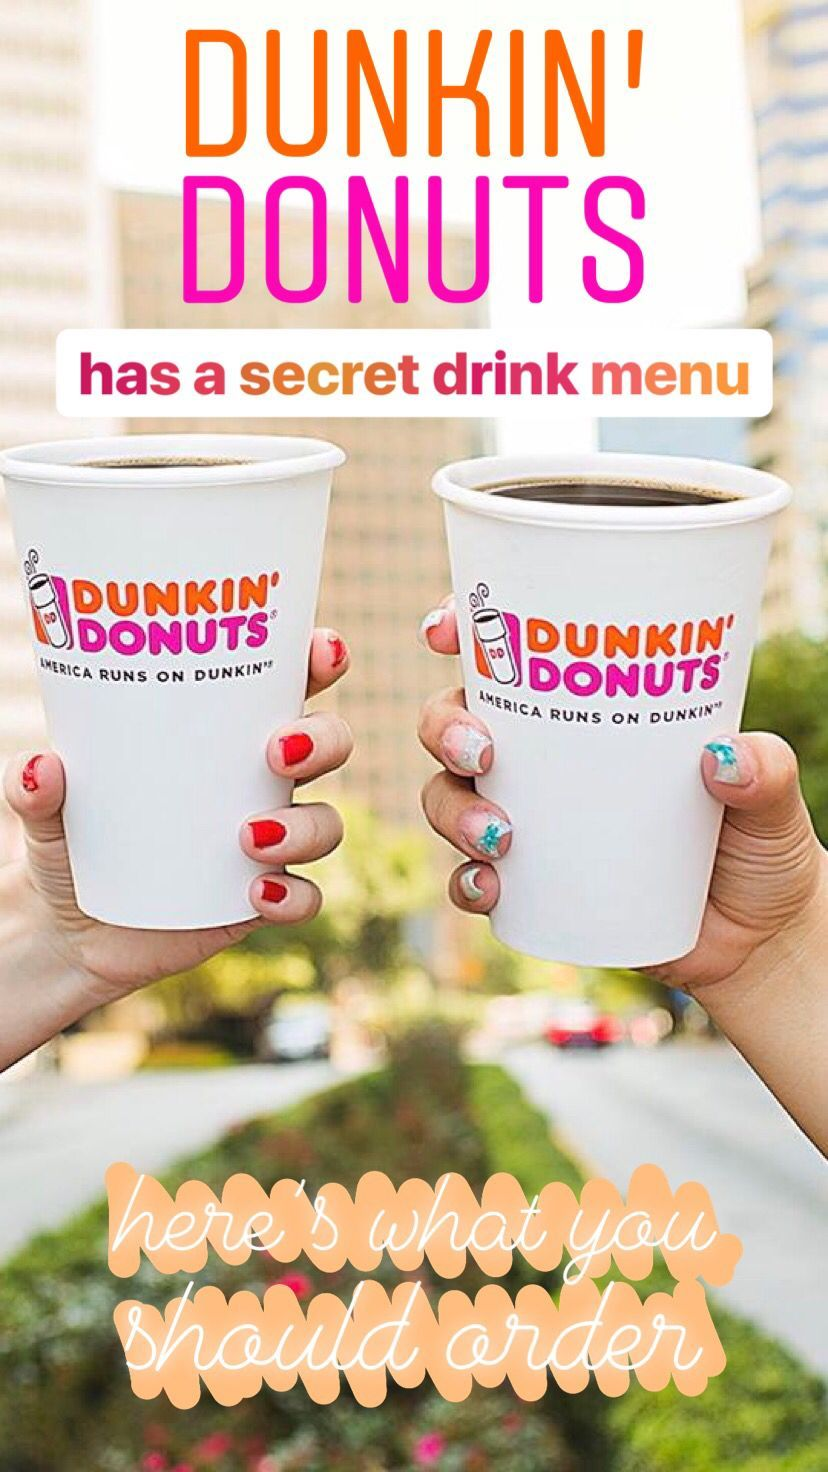 Dunkin' Donuts has a secret drink menu — here's what you